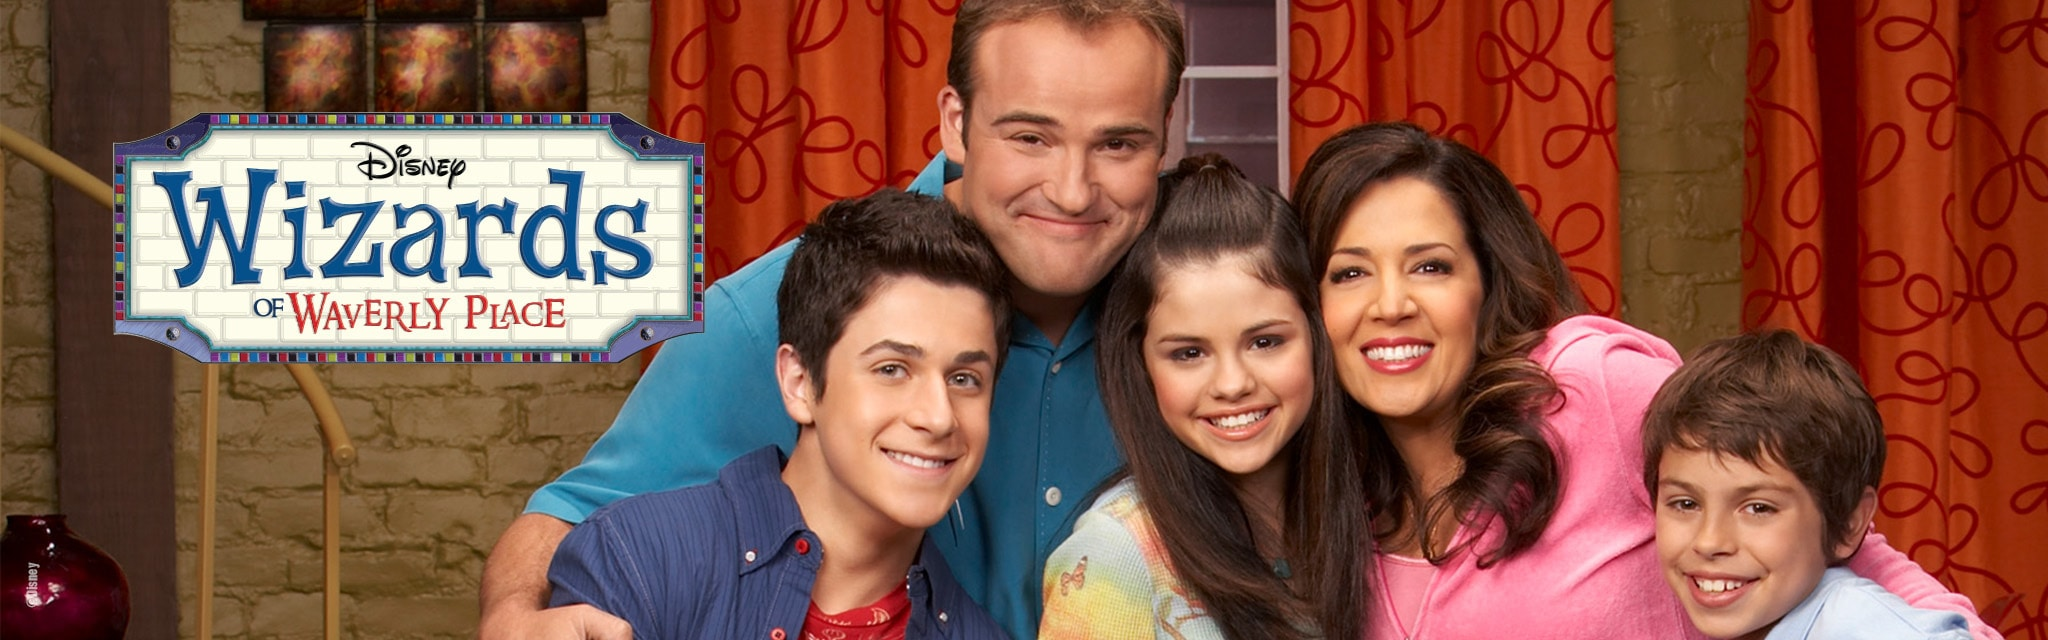 Dihin-Wizards of Waverly Place